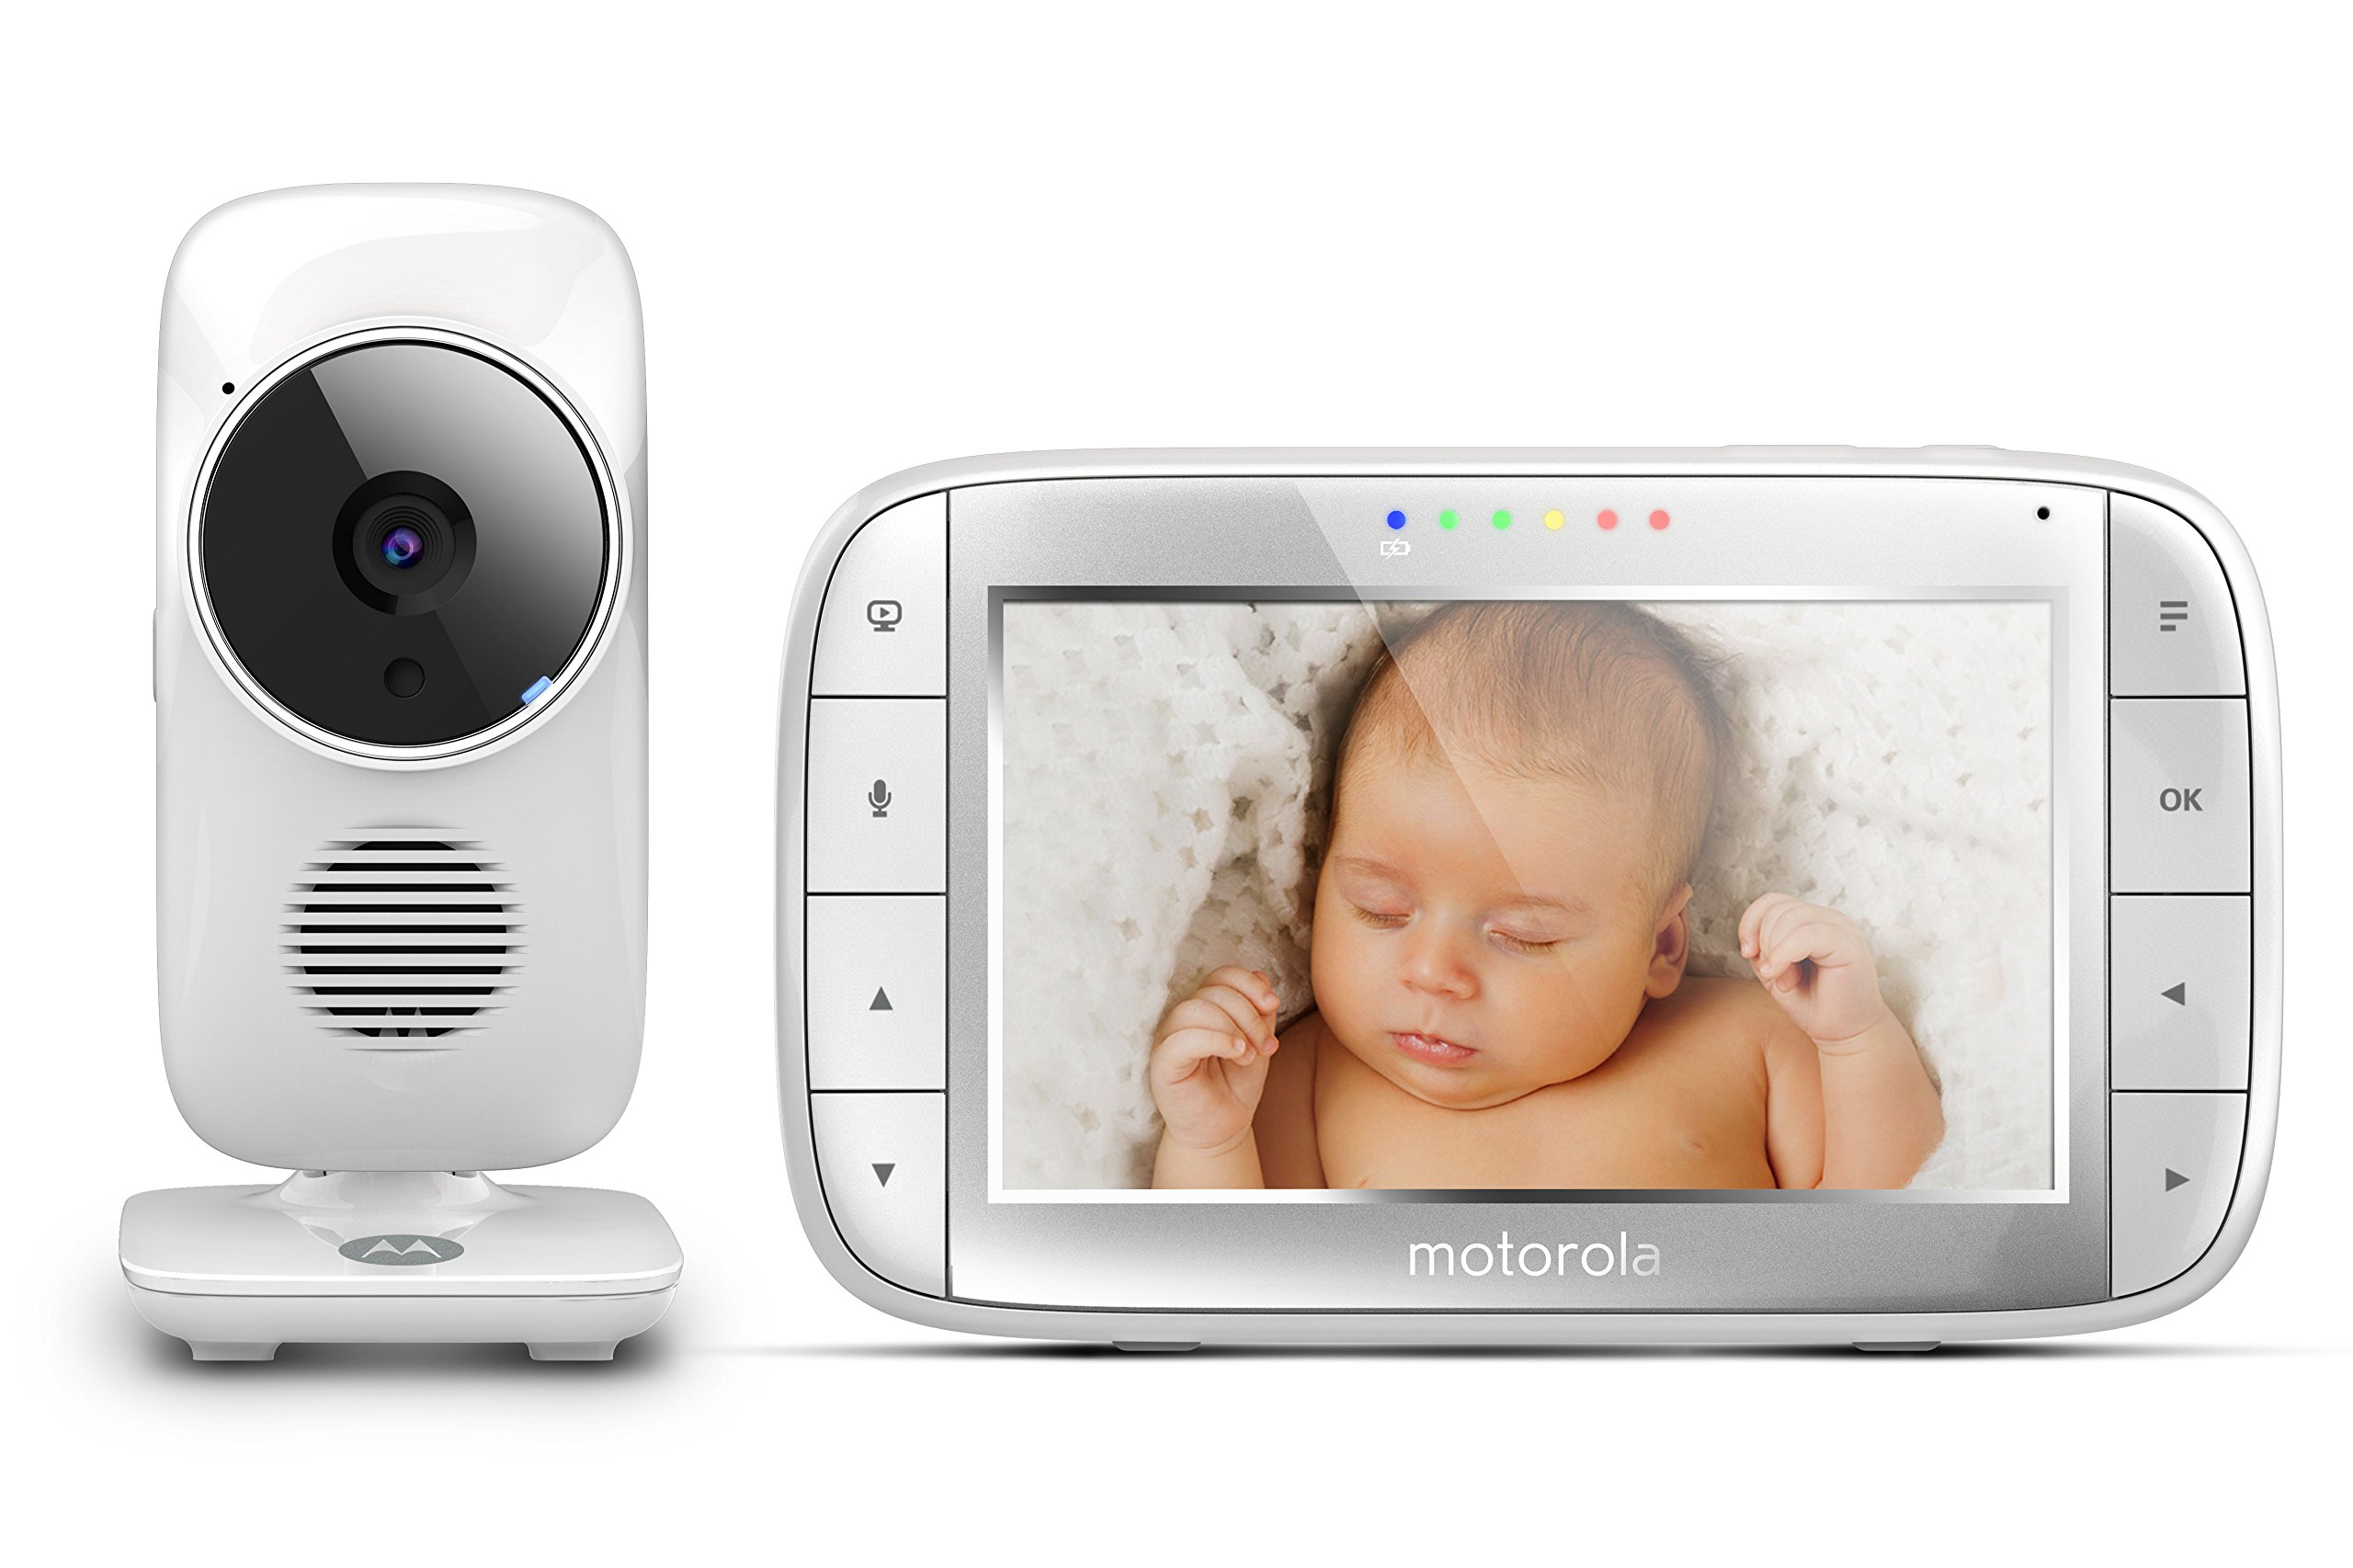 "Motorola MBP48 5 inch Video Baby Monitor Motorola Baby 5"" color display two-way communication Infrared night vision Room temperature monitoring 1"